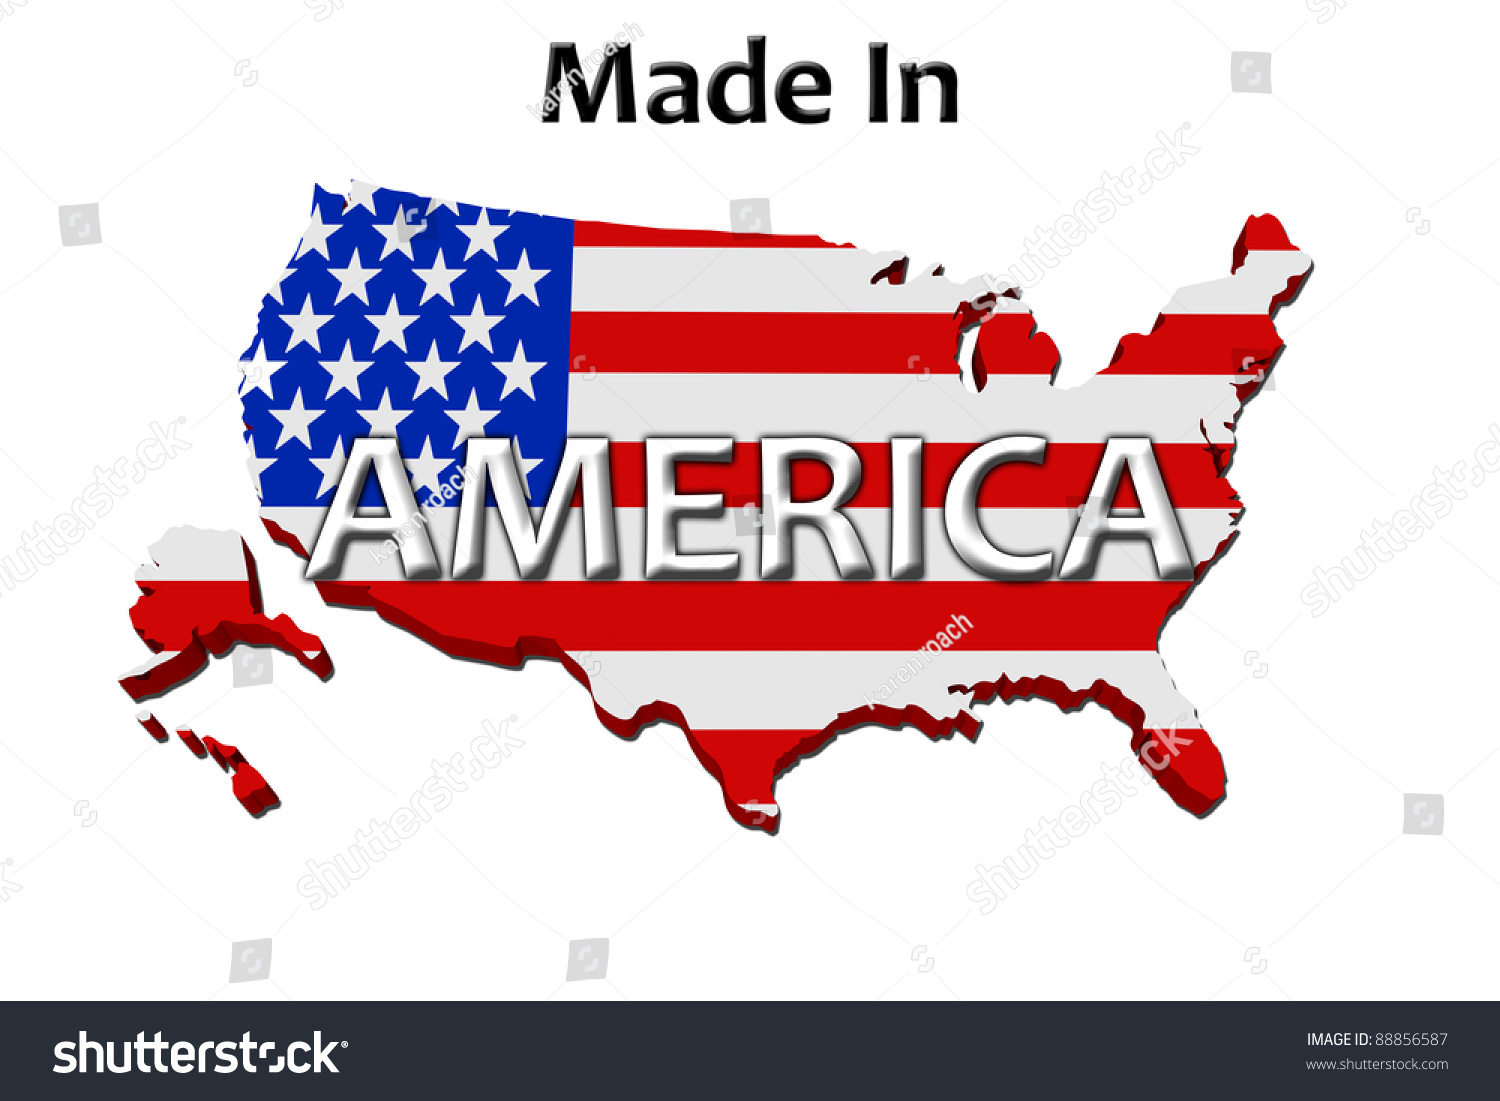 a red white and blue map of the usa with made in america isolated on